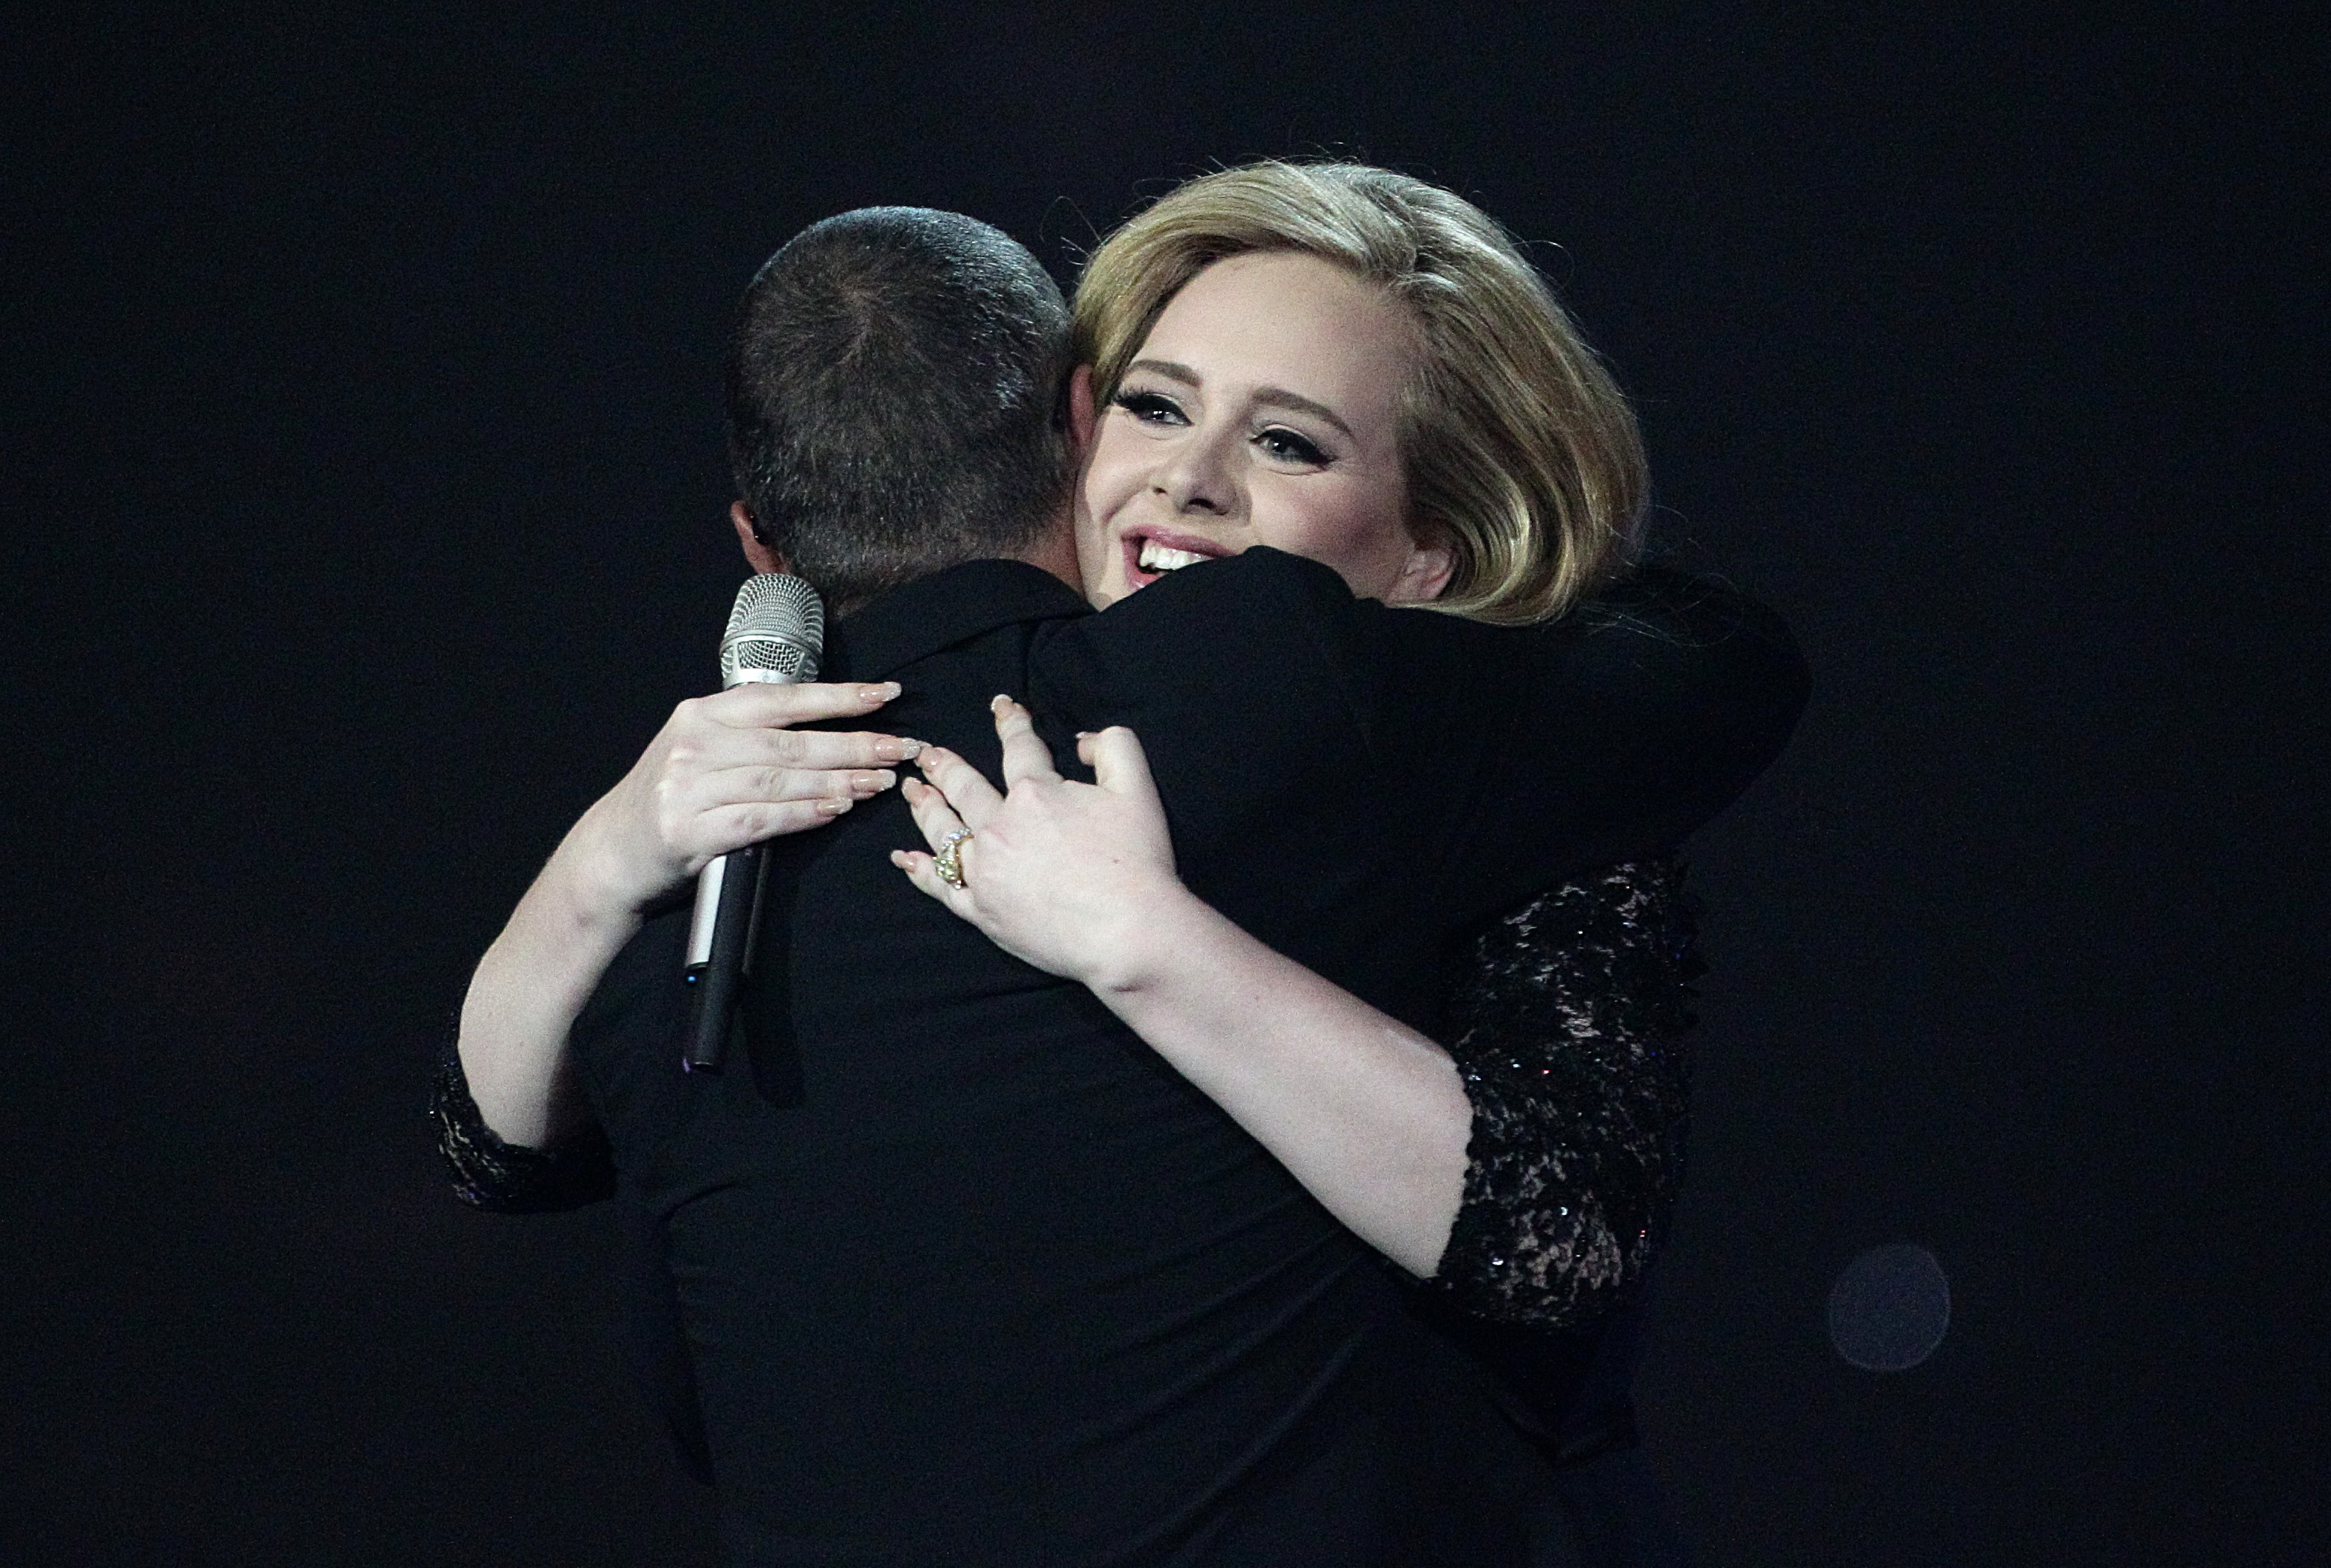 Adele and George Michael at the BRIT Awards 2012